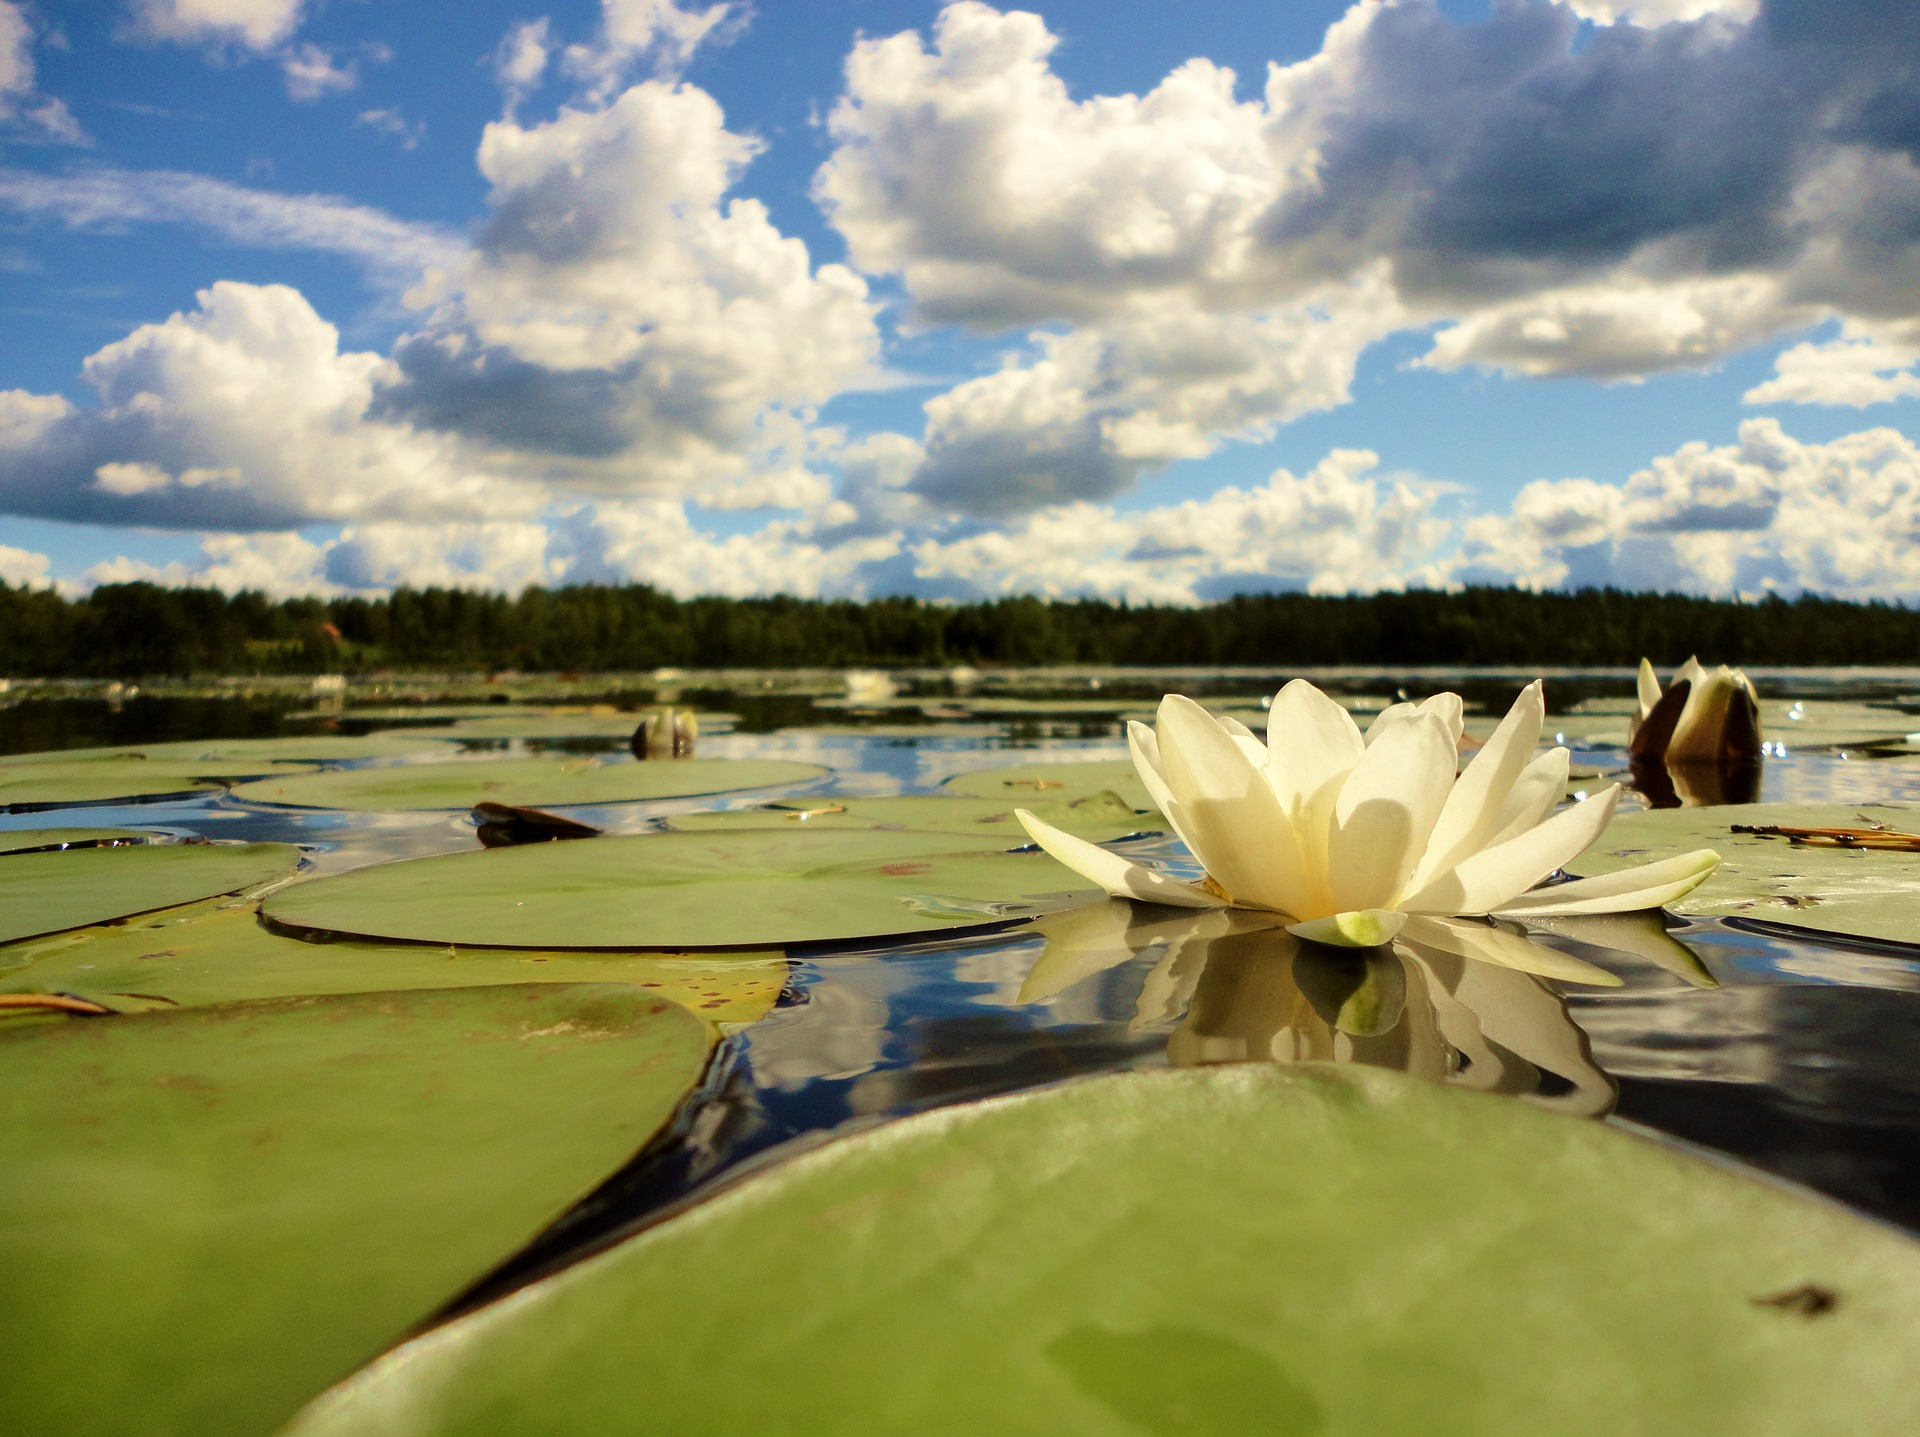 A photo of a white Water Lily on a lake by VicoHeintz on Pixabay